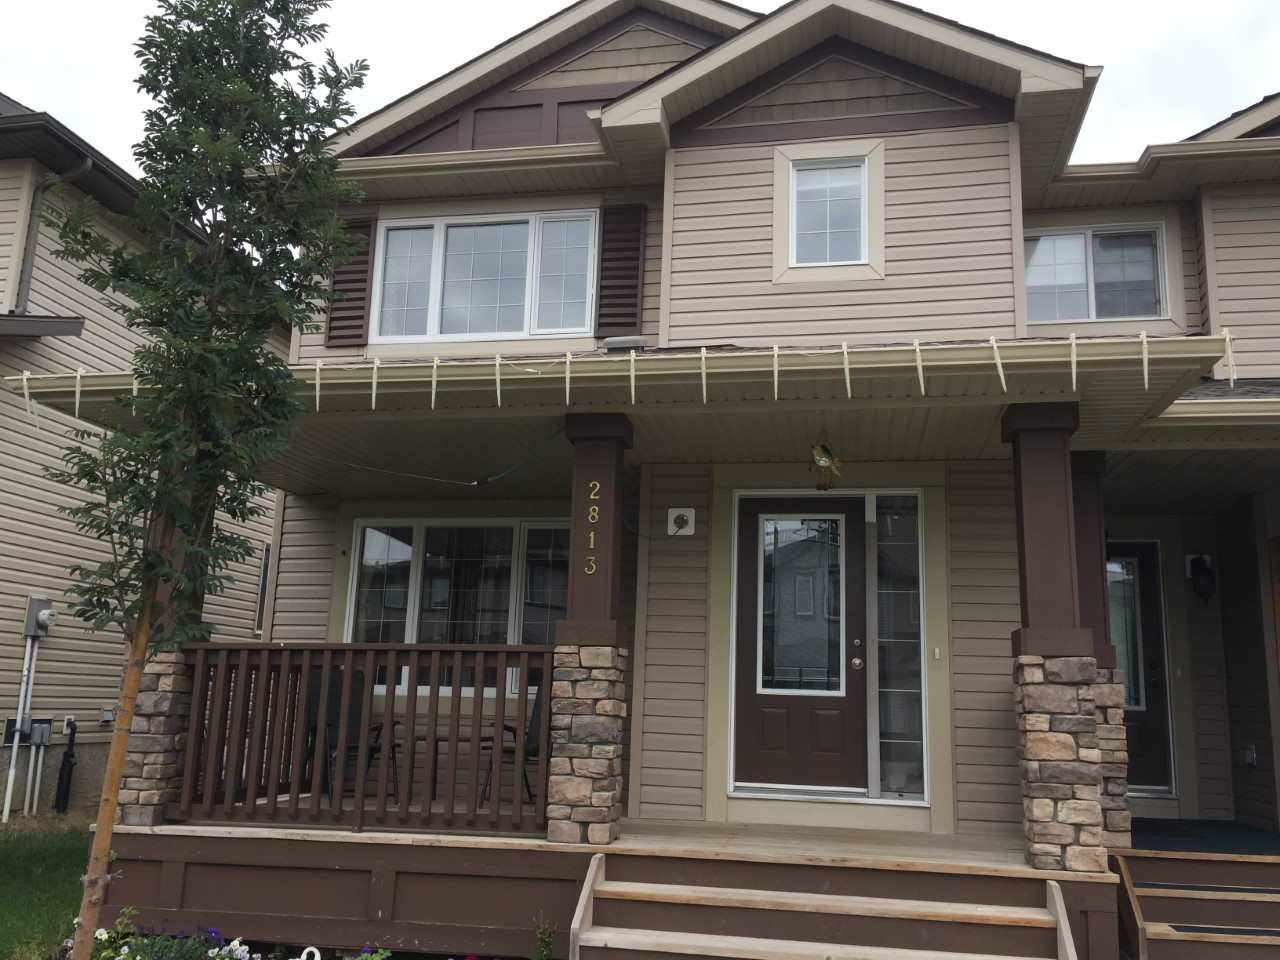 Main Photo: 2813 15 Street in Edmonton: Zone 30 House Half Duplex for sale : MLS®# E4169249